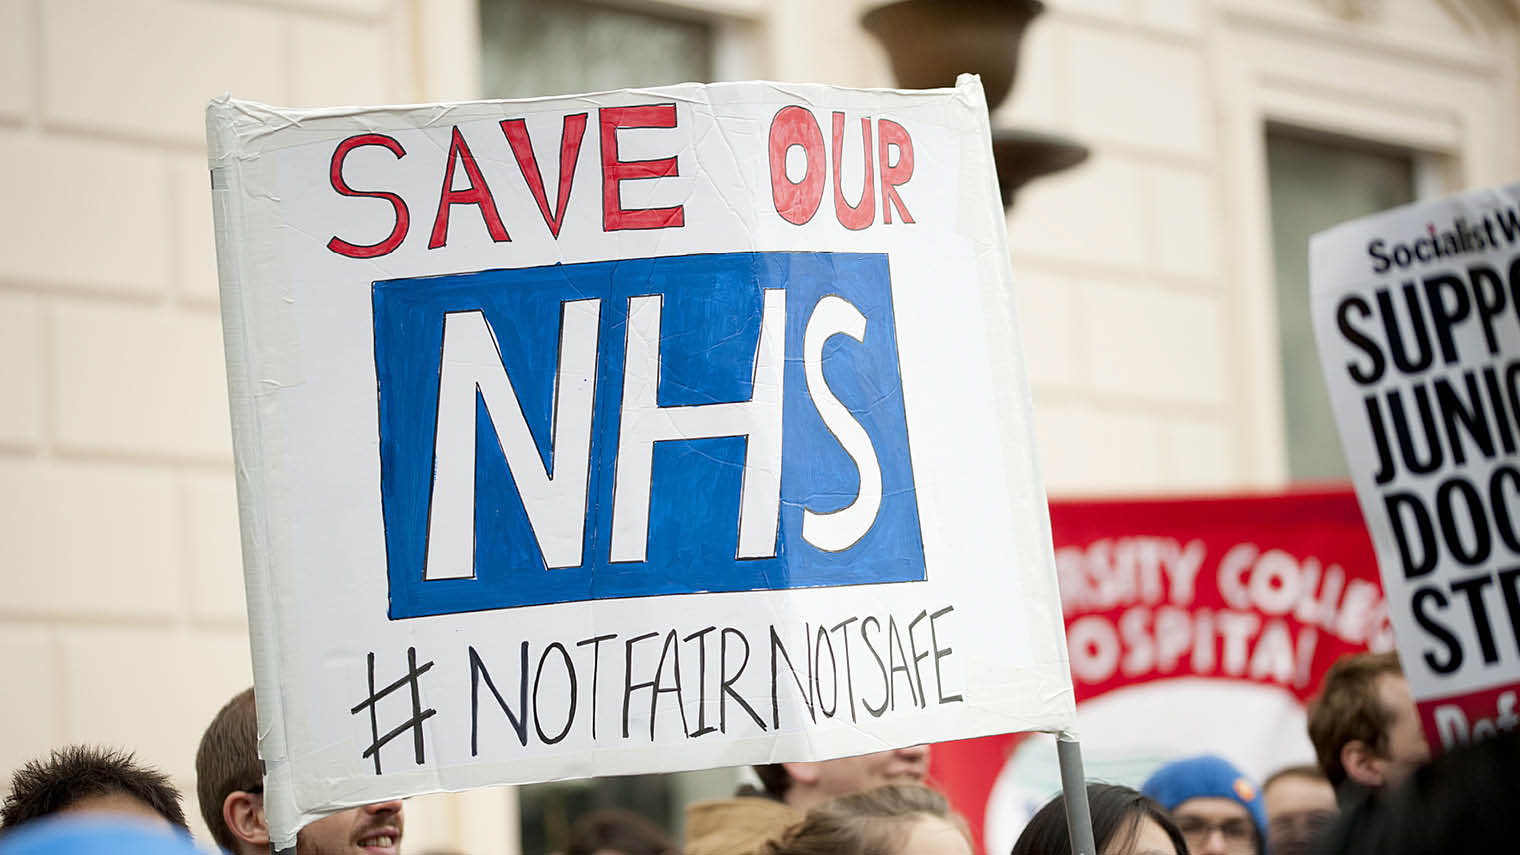 Save our NHS placard held above crowd